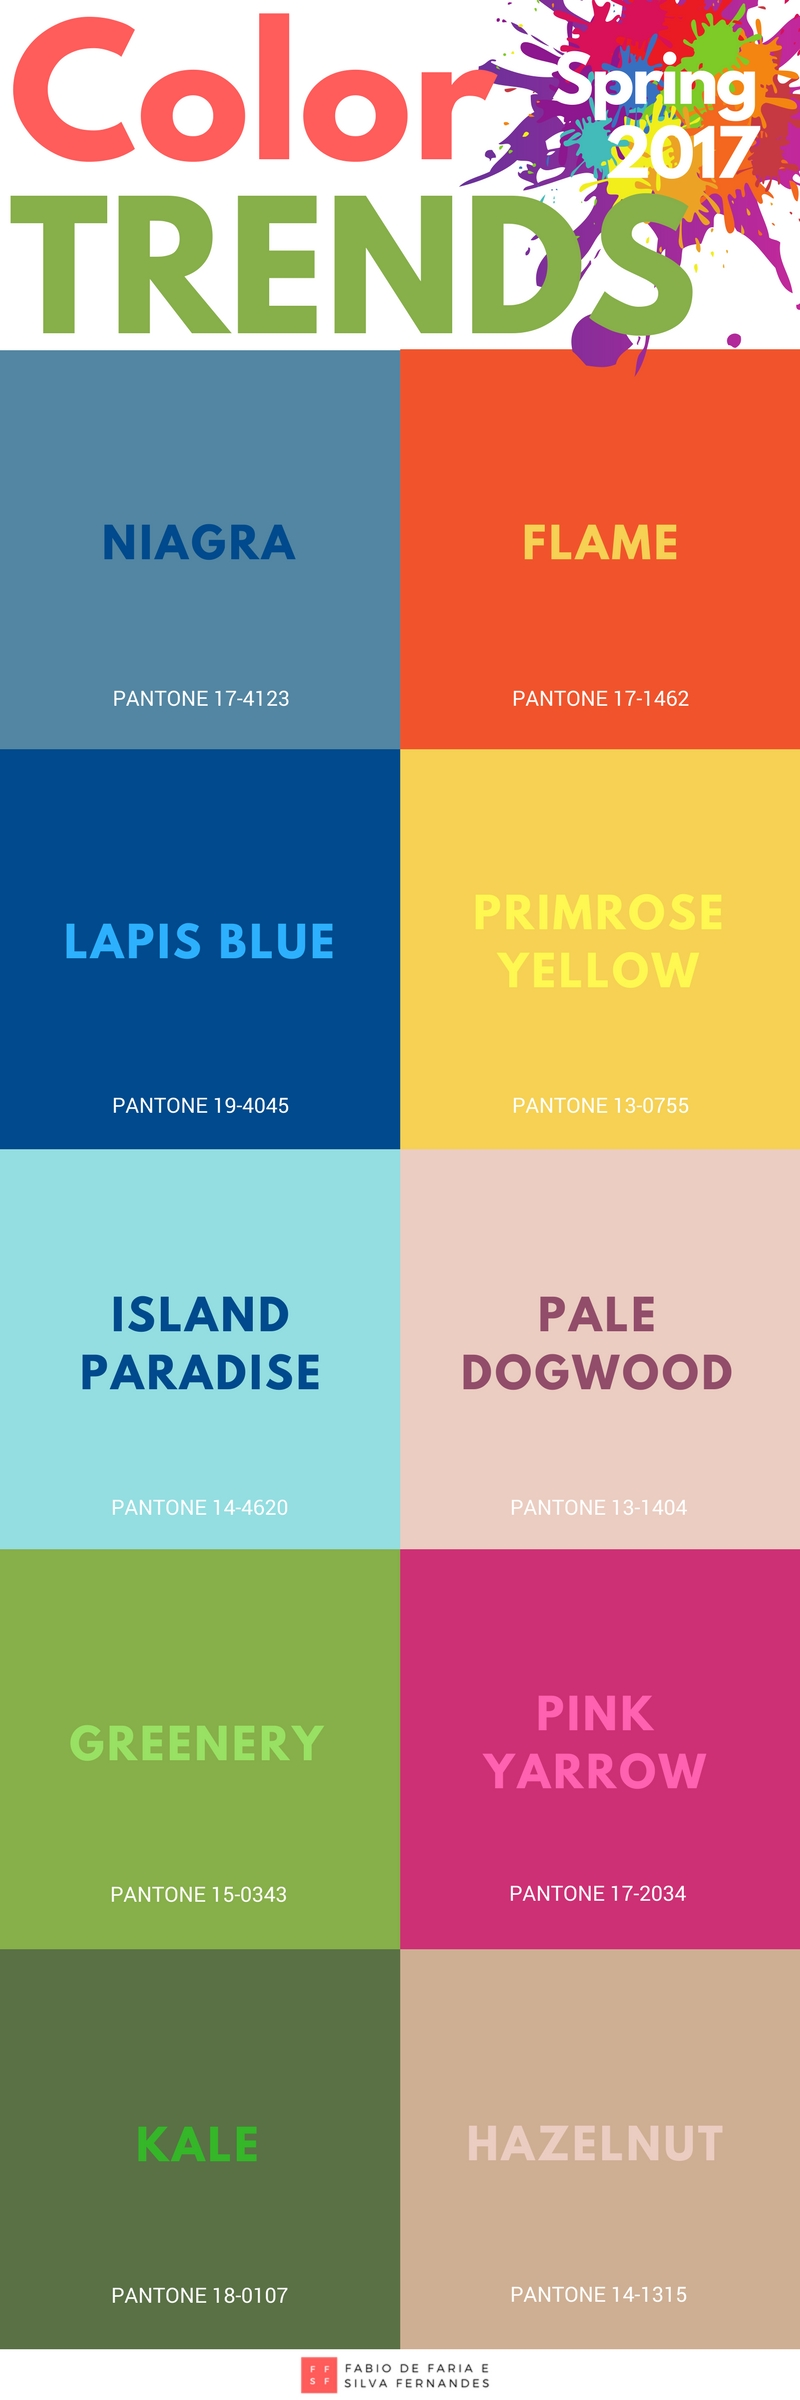 Color_Trends_Spring_2017